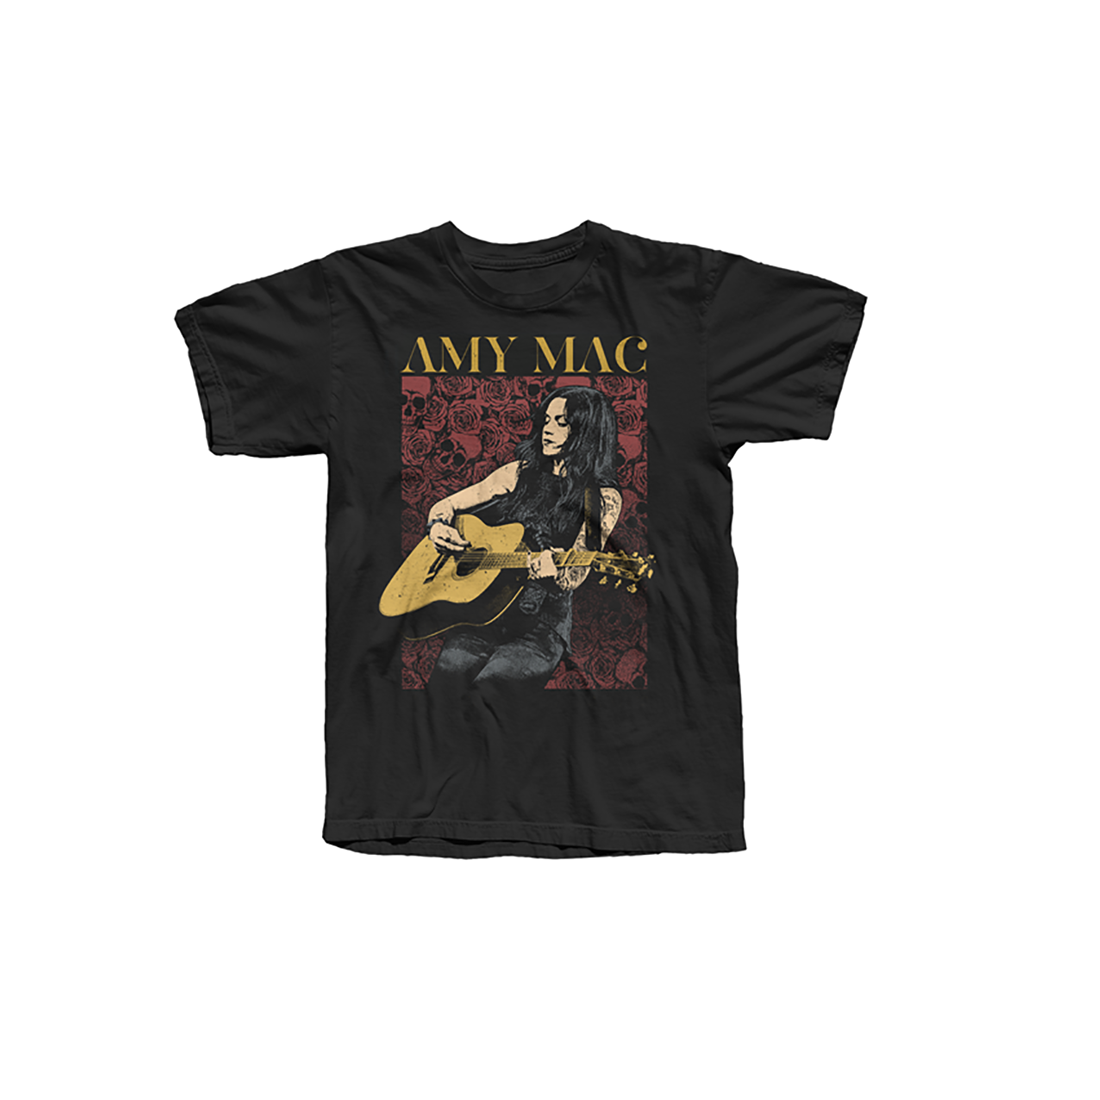 Amy Macdonald Official Store